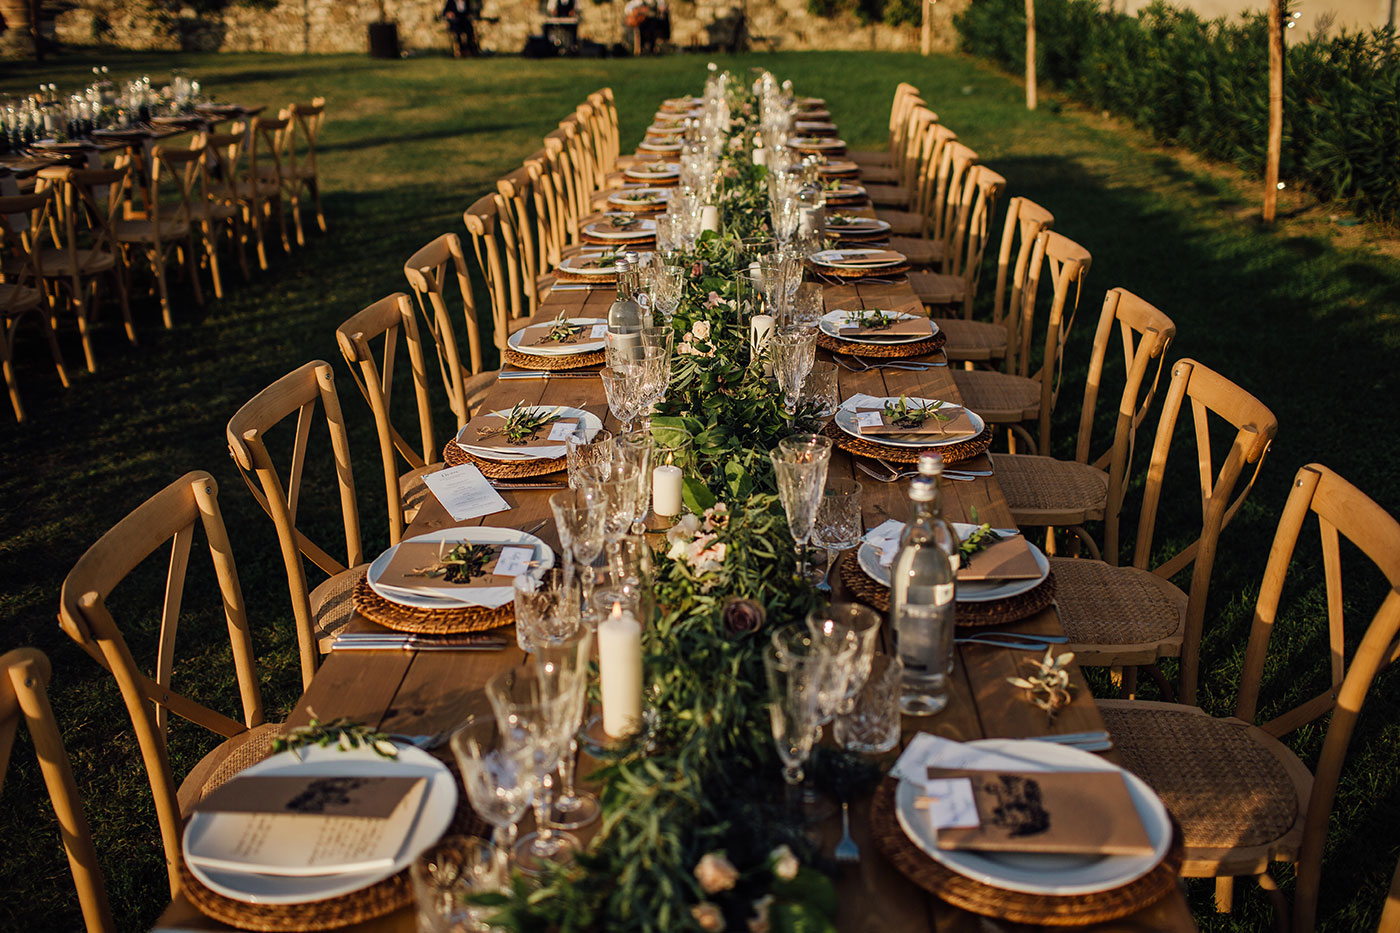 Villa Medicea di Lilliano Wedding Venue